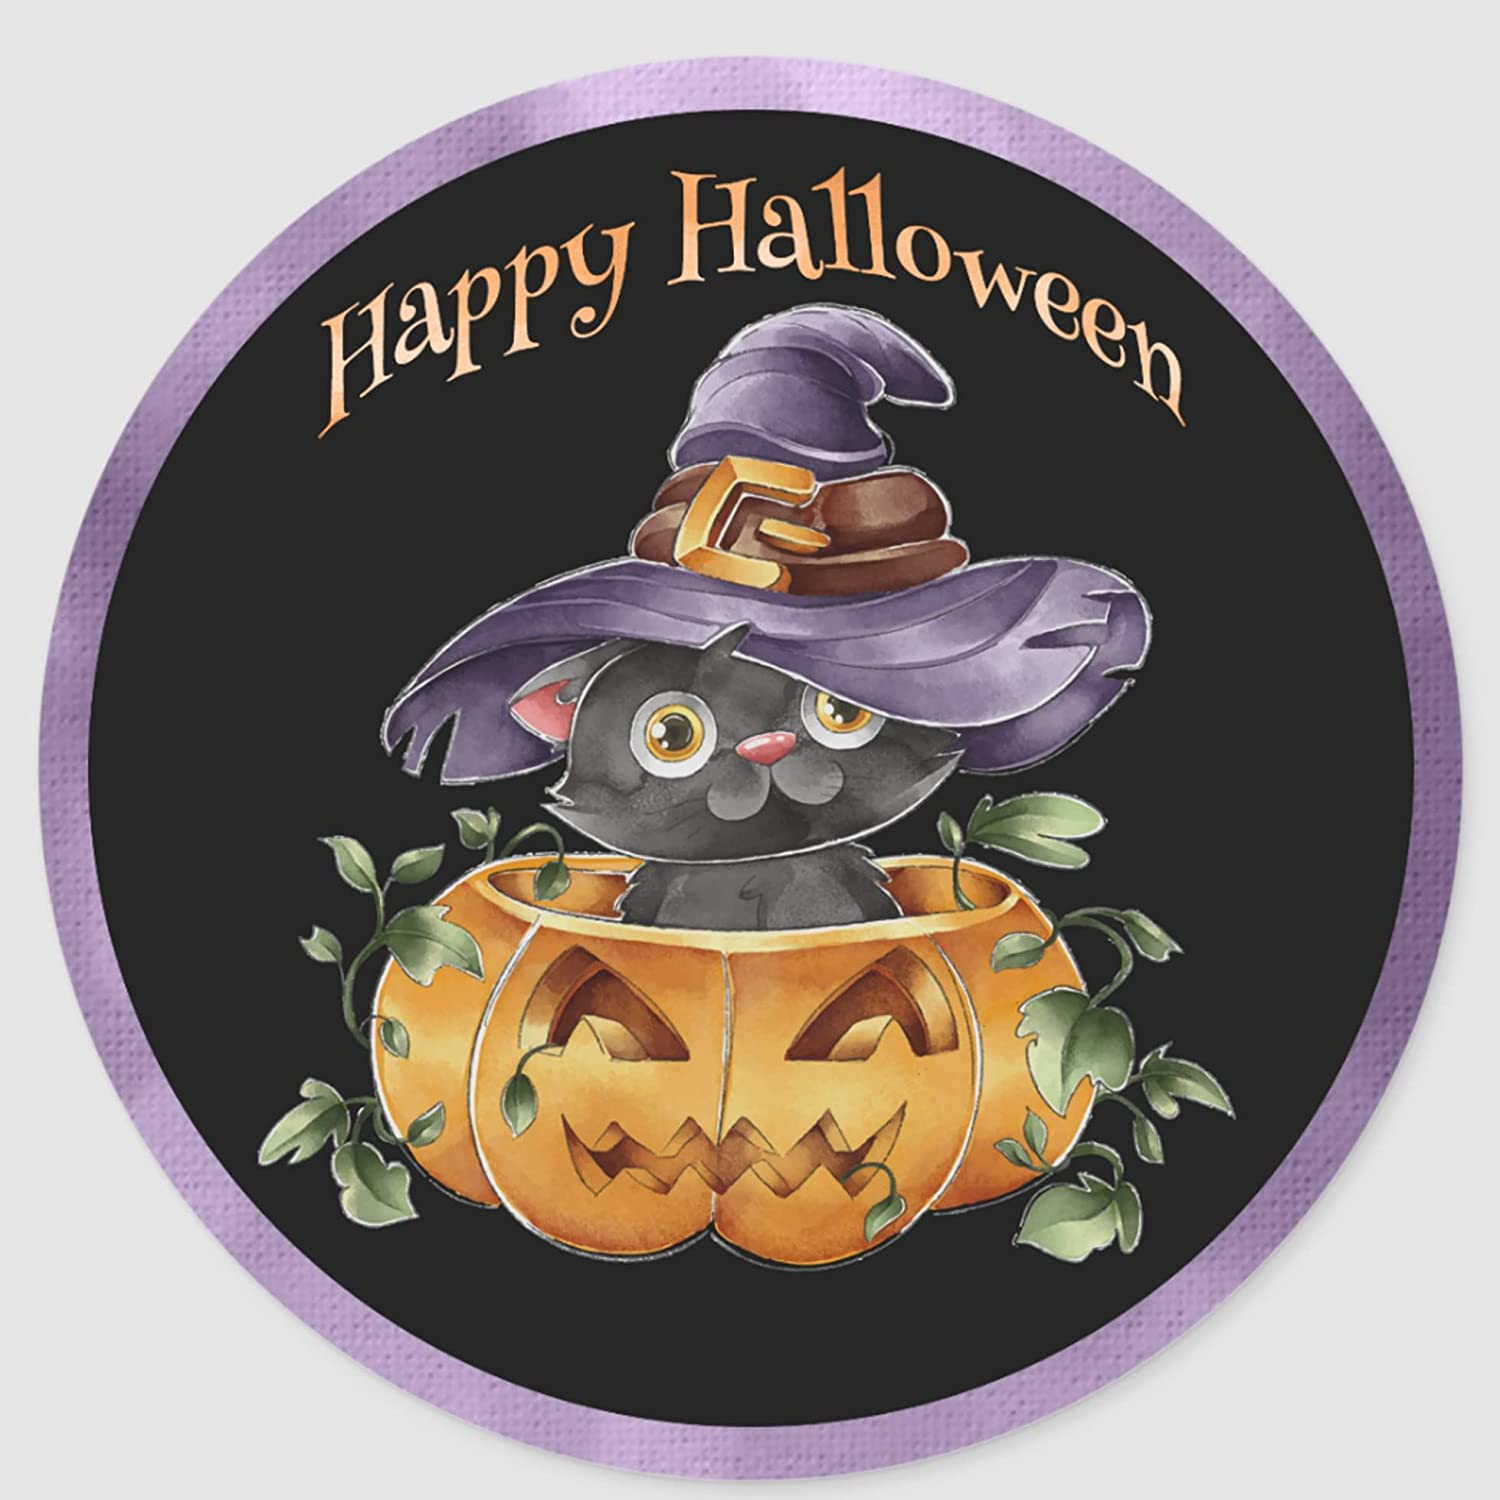 Halloween - Watercolor Cute Kitting in Classic We OFFer at cheap prices Round Vin sold out Pumpkin